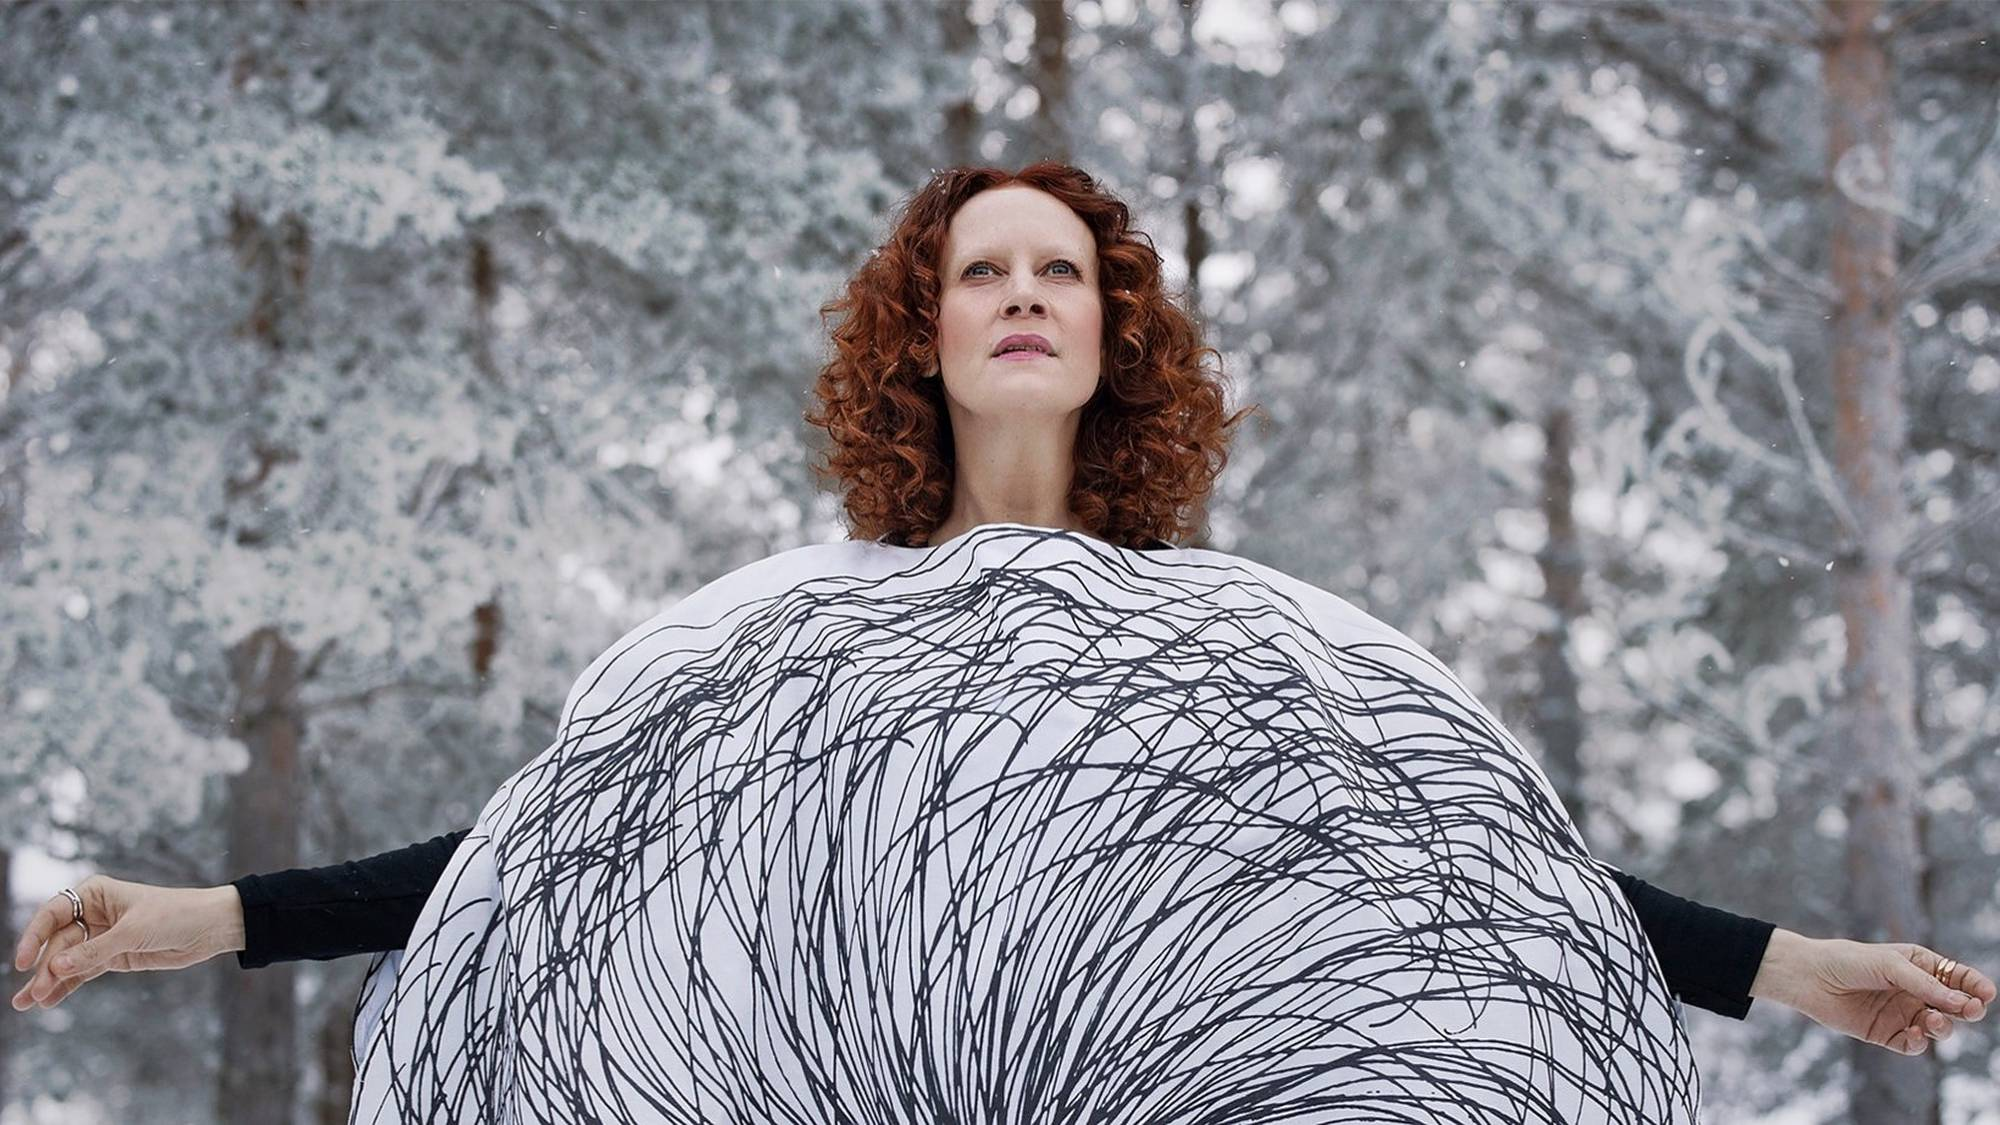 red-haired woman, dressed in sustainable clothing looks to the sky